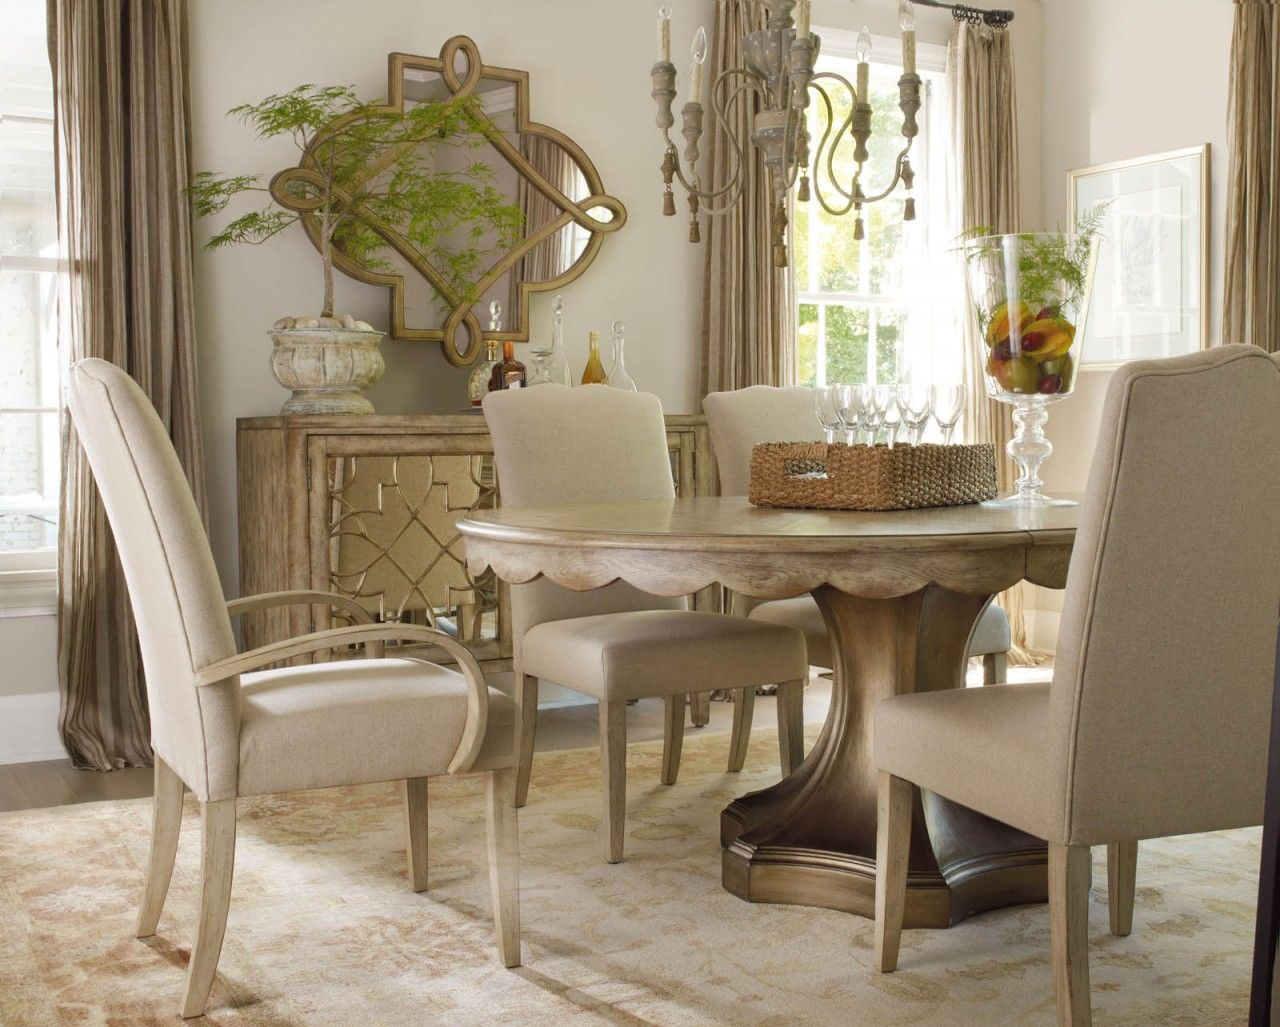 Hooker Furniture Sanctuary 2 Door Mirrored Console 301385002 Captivating Clearance Dining Room Sets 2018